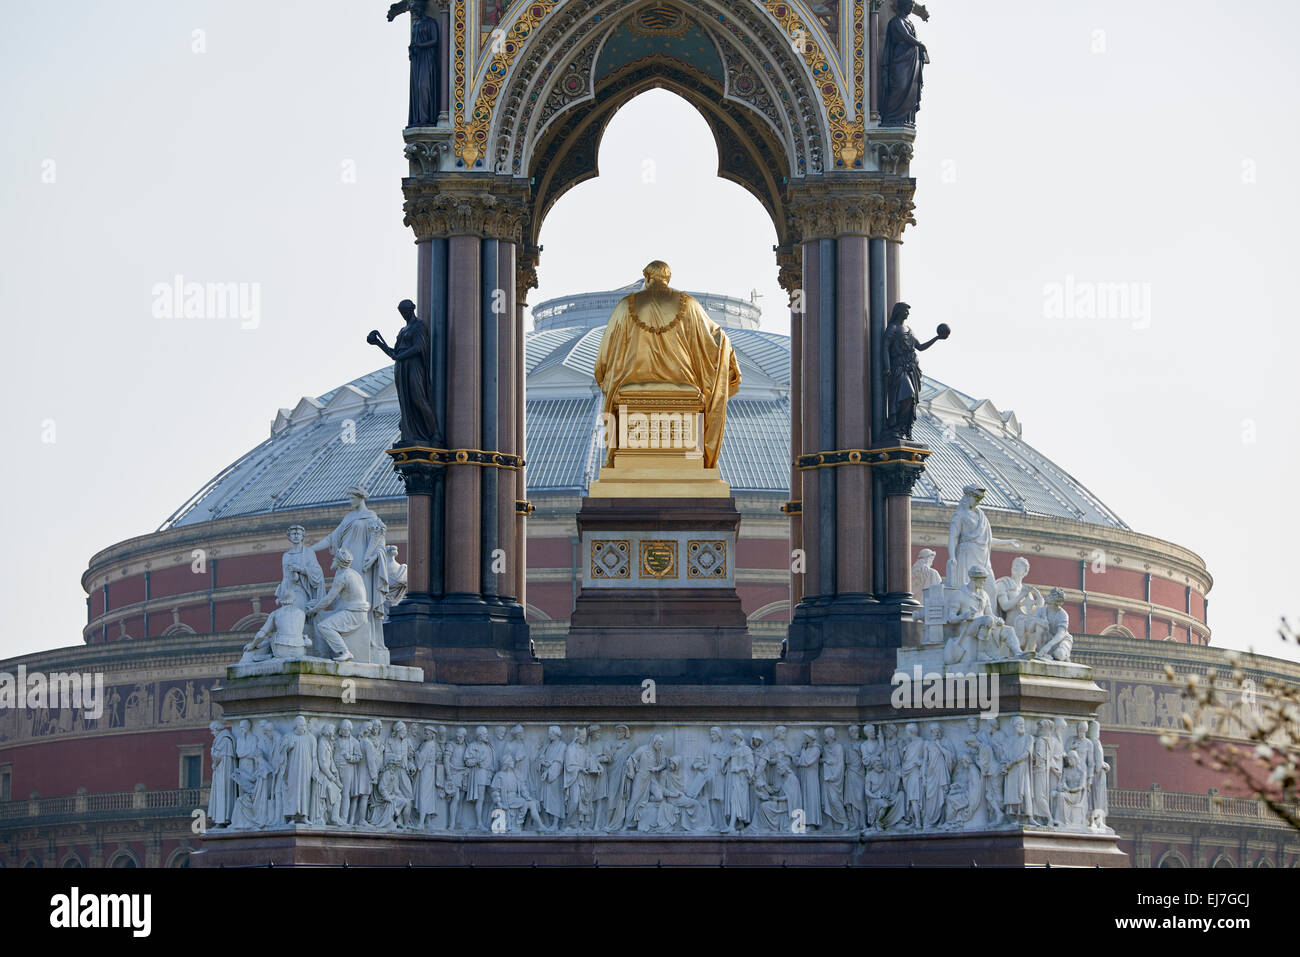 Albert Memorial statue overlooking hazy Royal Albert Hall, in London. The memorial was commissioned by Queen Victoria - Stock Image